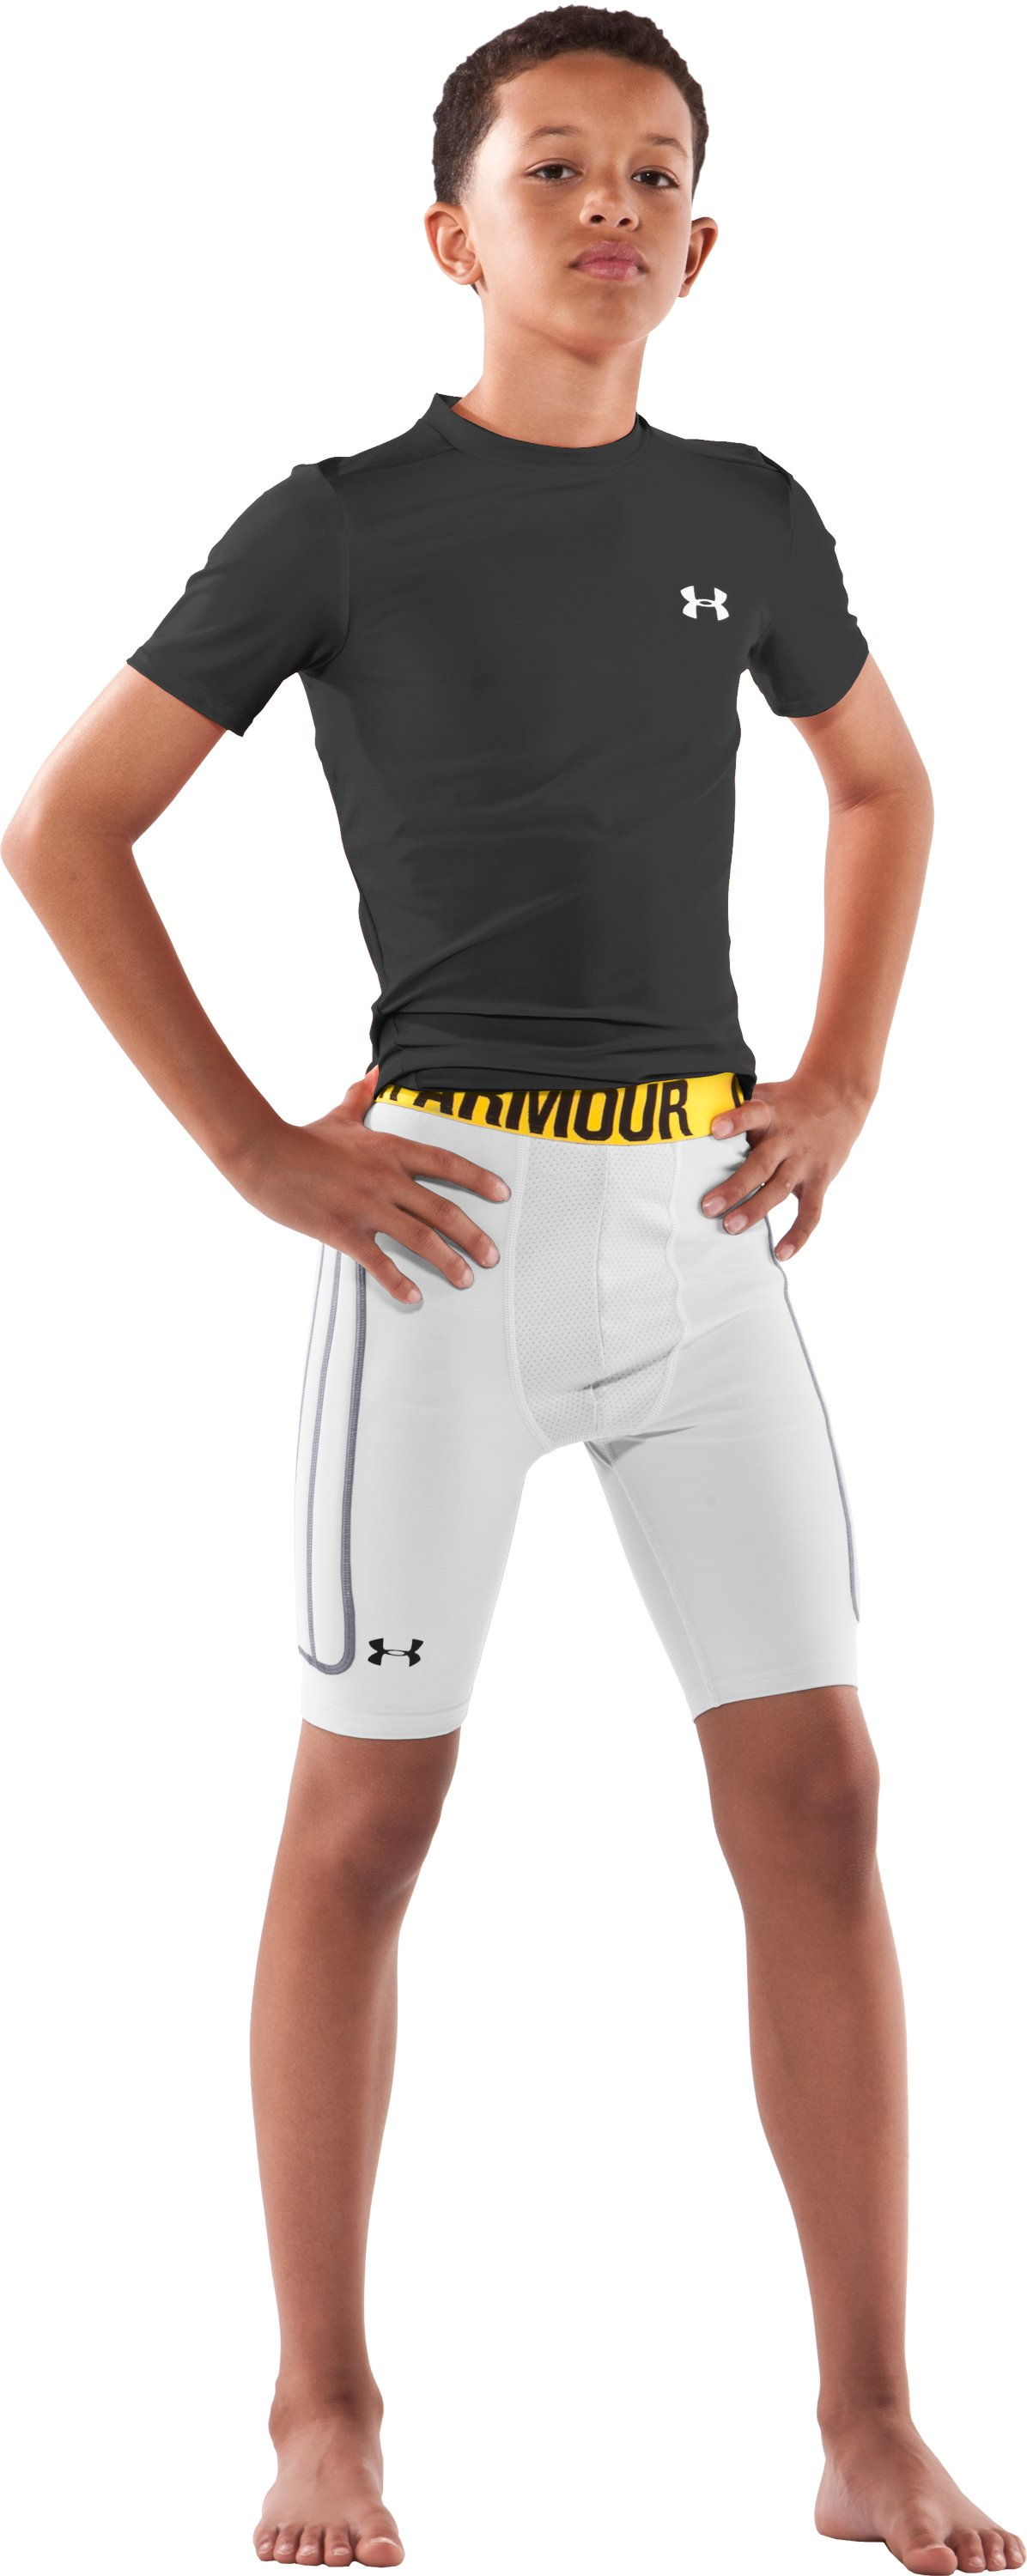 Boys' Break III Compression Slider Shorts, White, zoomed image